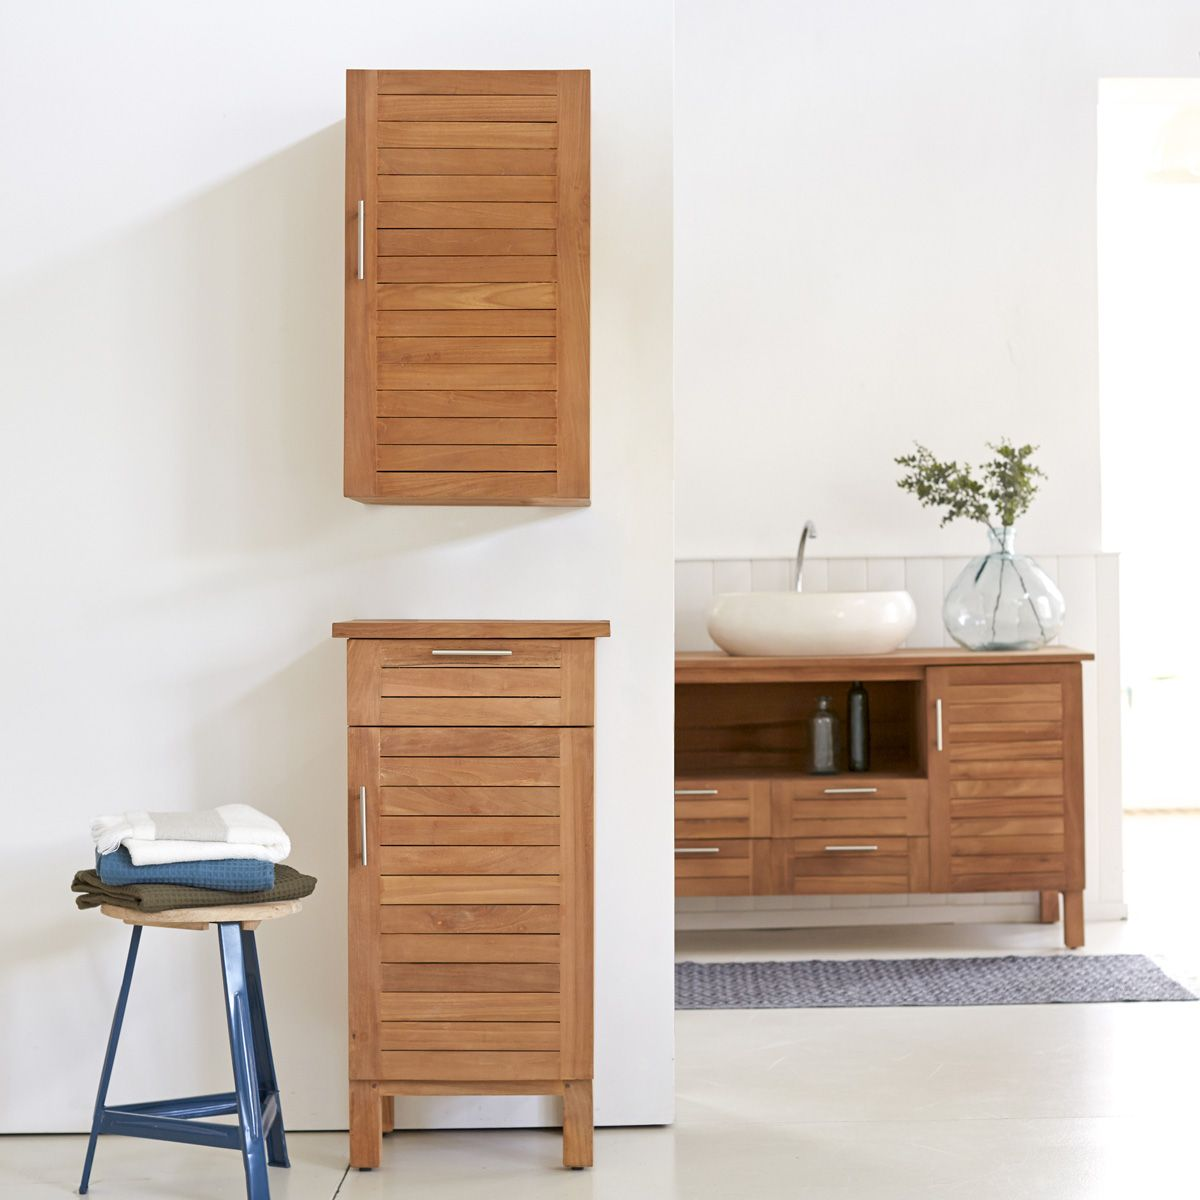 Balance Through Bathroom Storage Tower,Modern People Usually Compose The  Balance Through Bathroom Storage Tower Based On The Desire For Making The  Modern